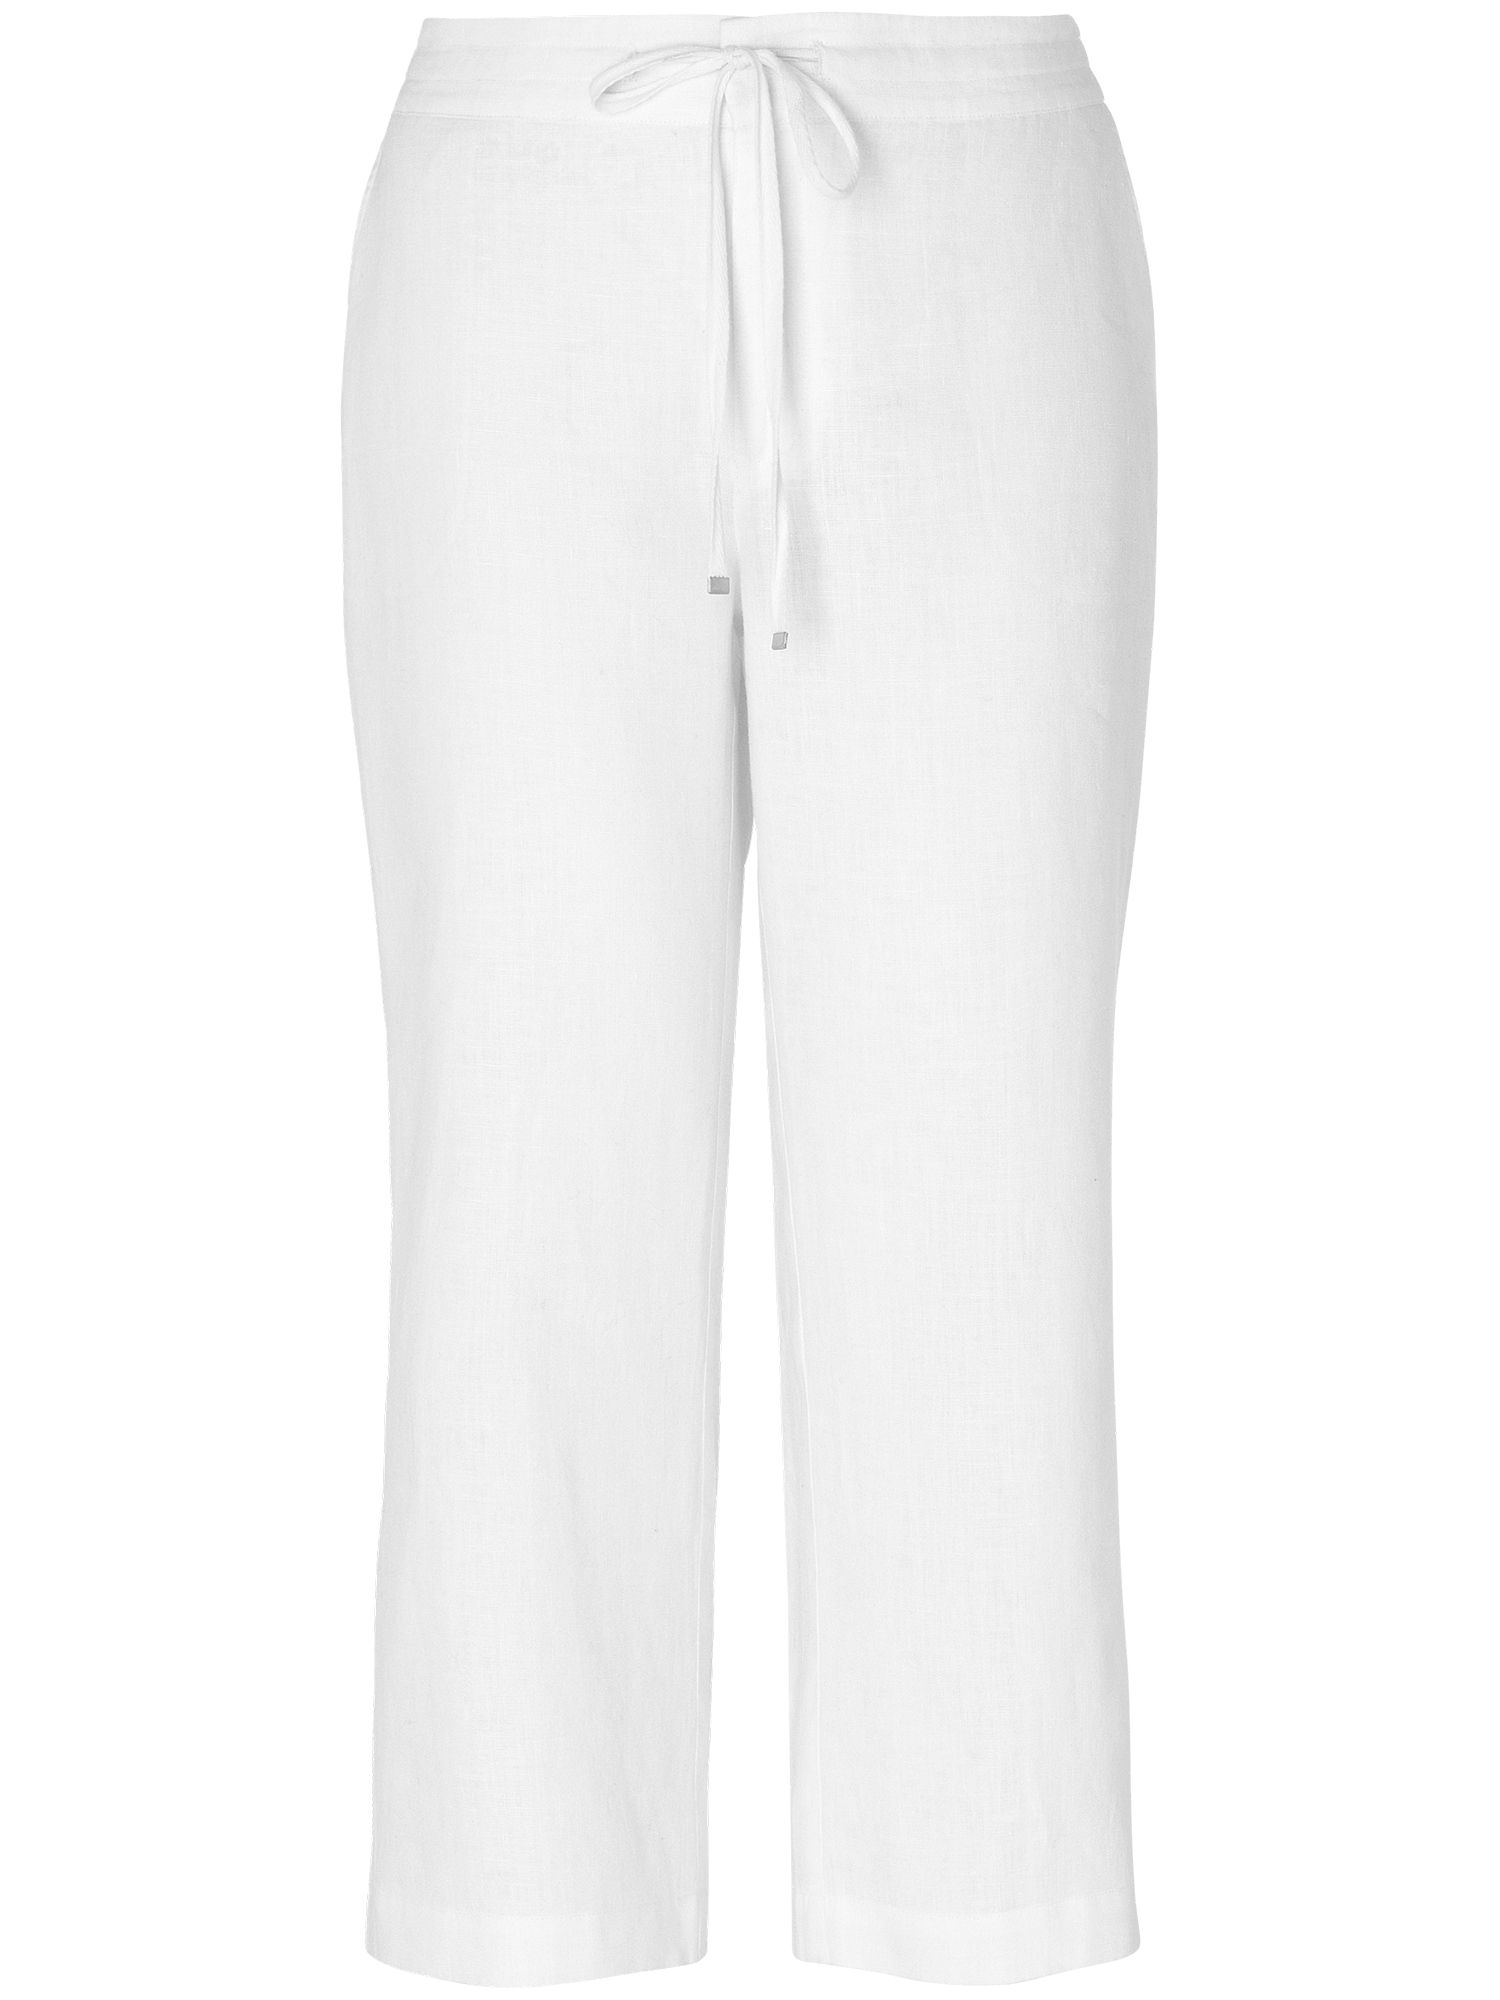 Elena cropped linen trousers